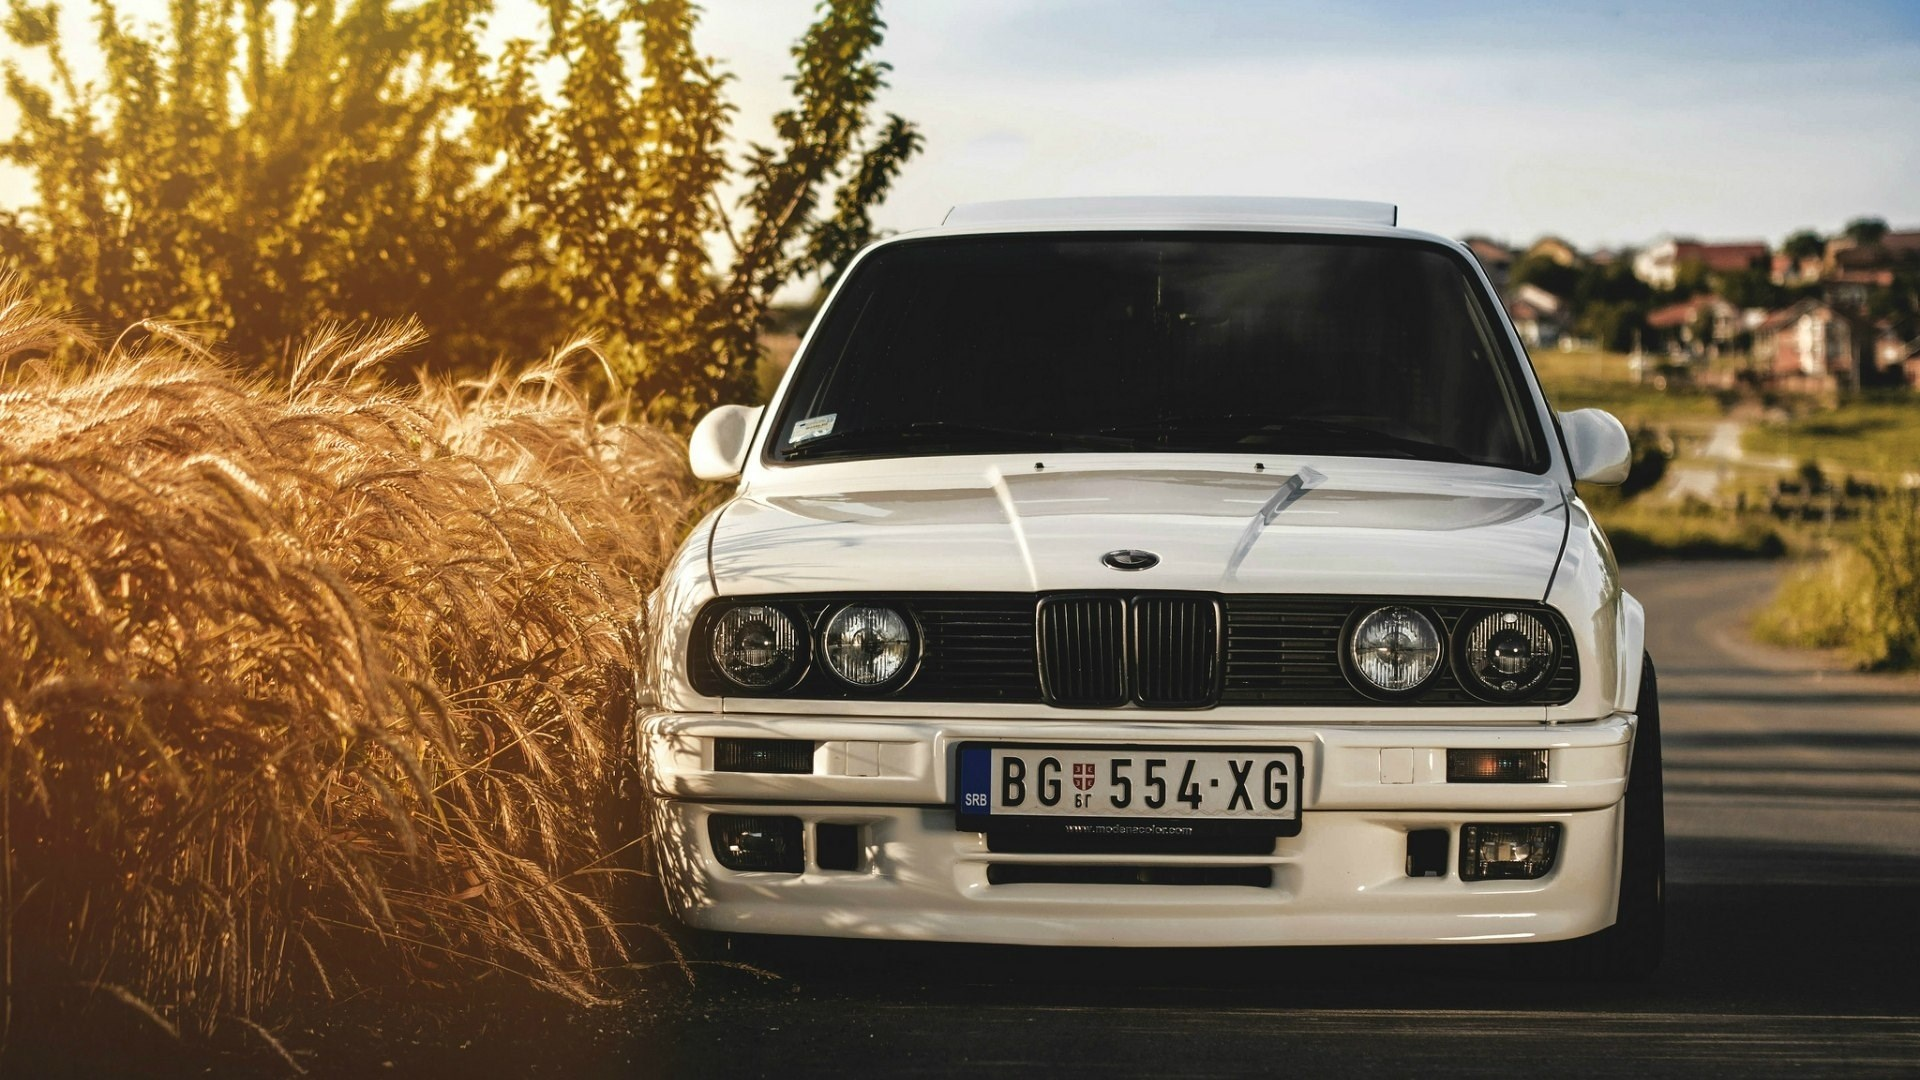 Download BMW M3 E30 Car wallpaper in Transportation wallpapers with 1920x1080